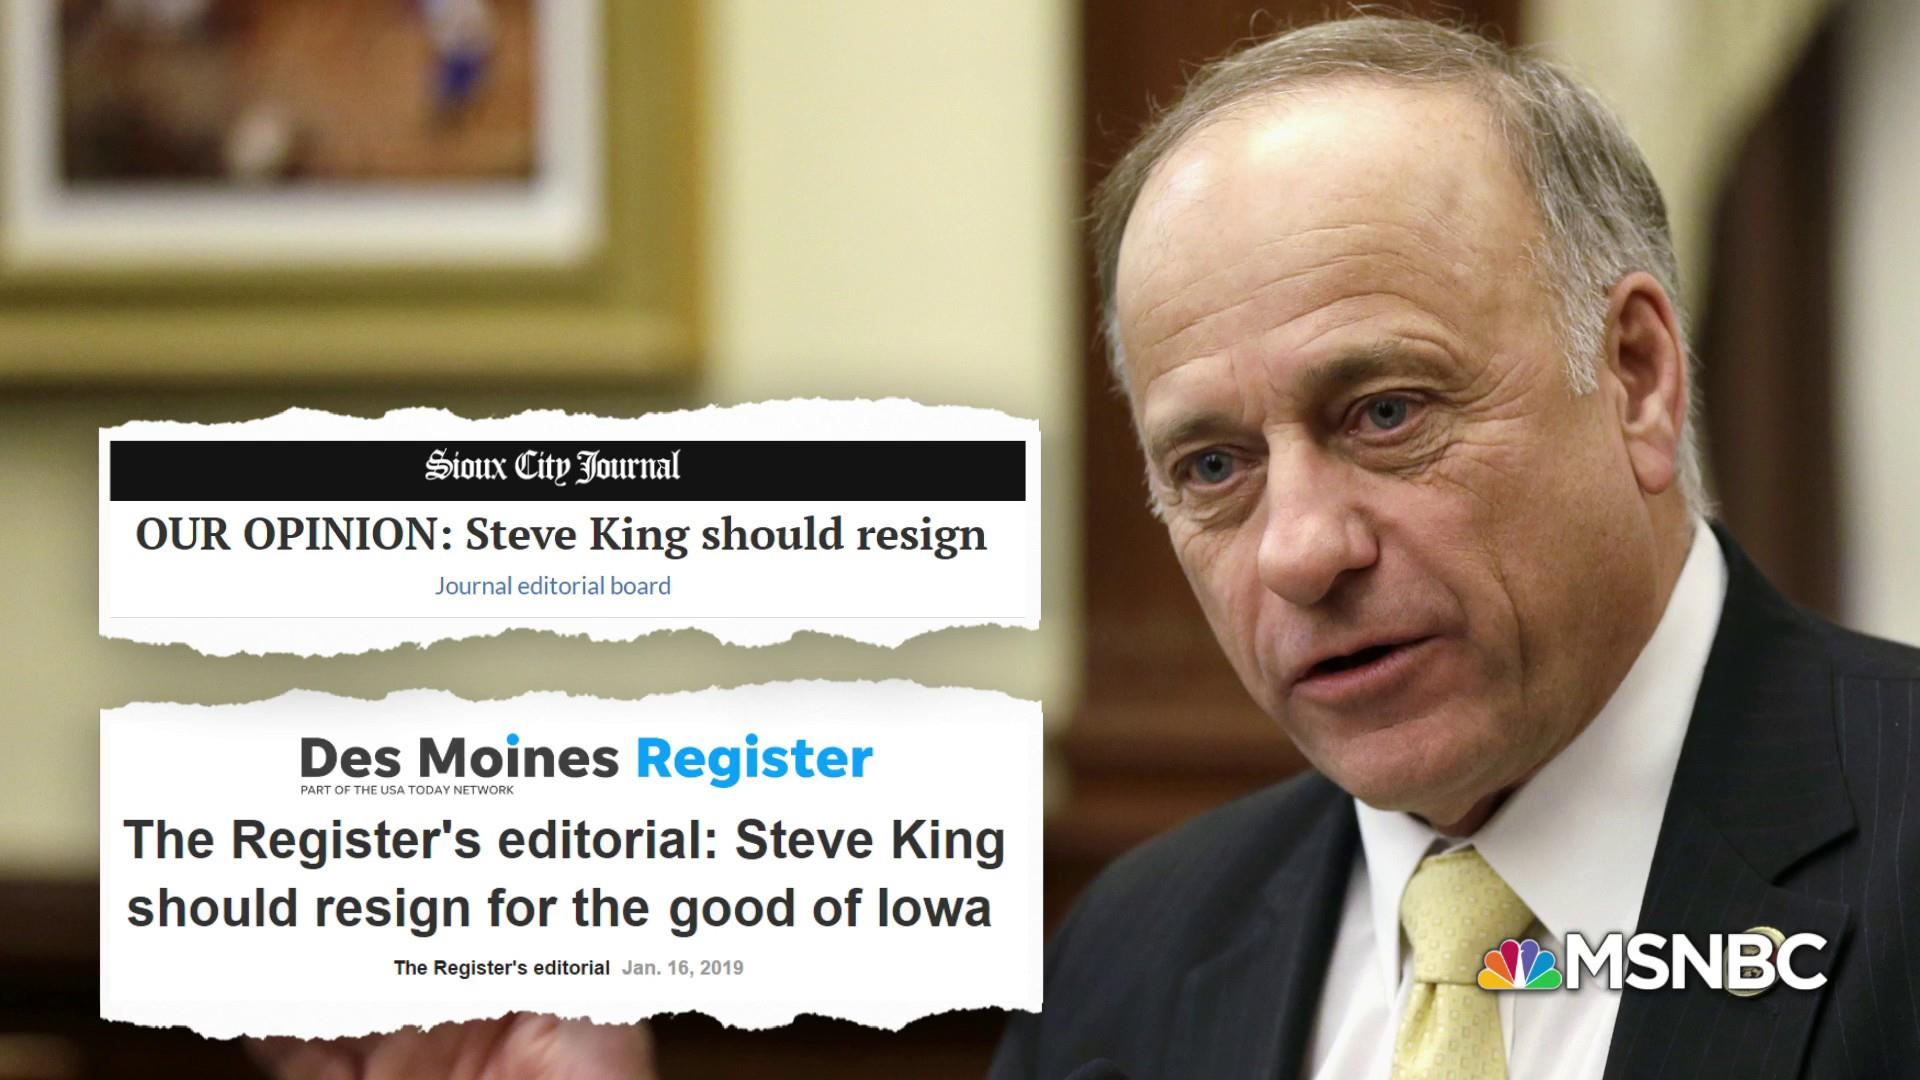 Calls for Rep. Steve King's resignation grow over racist remarks